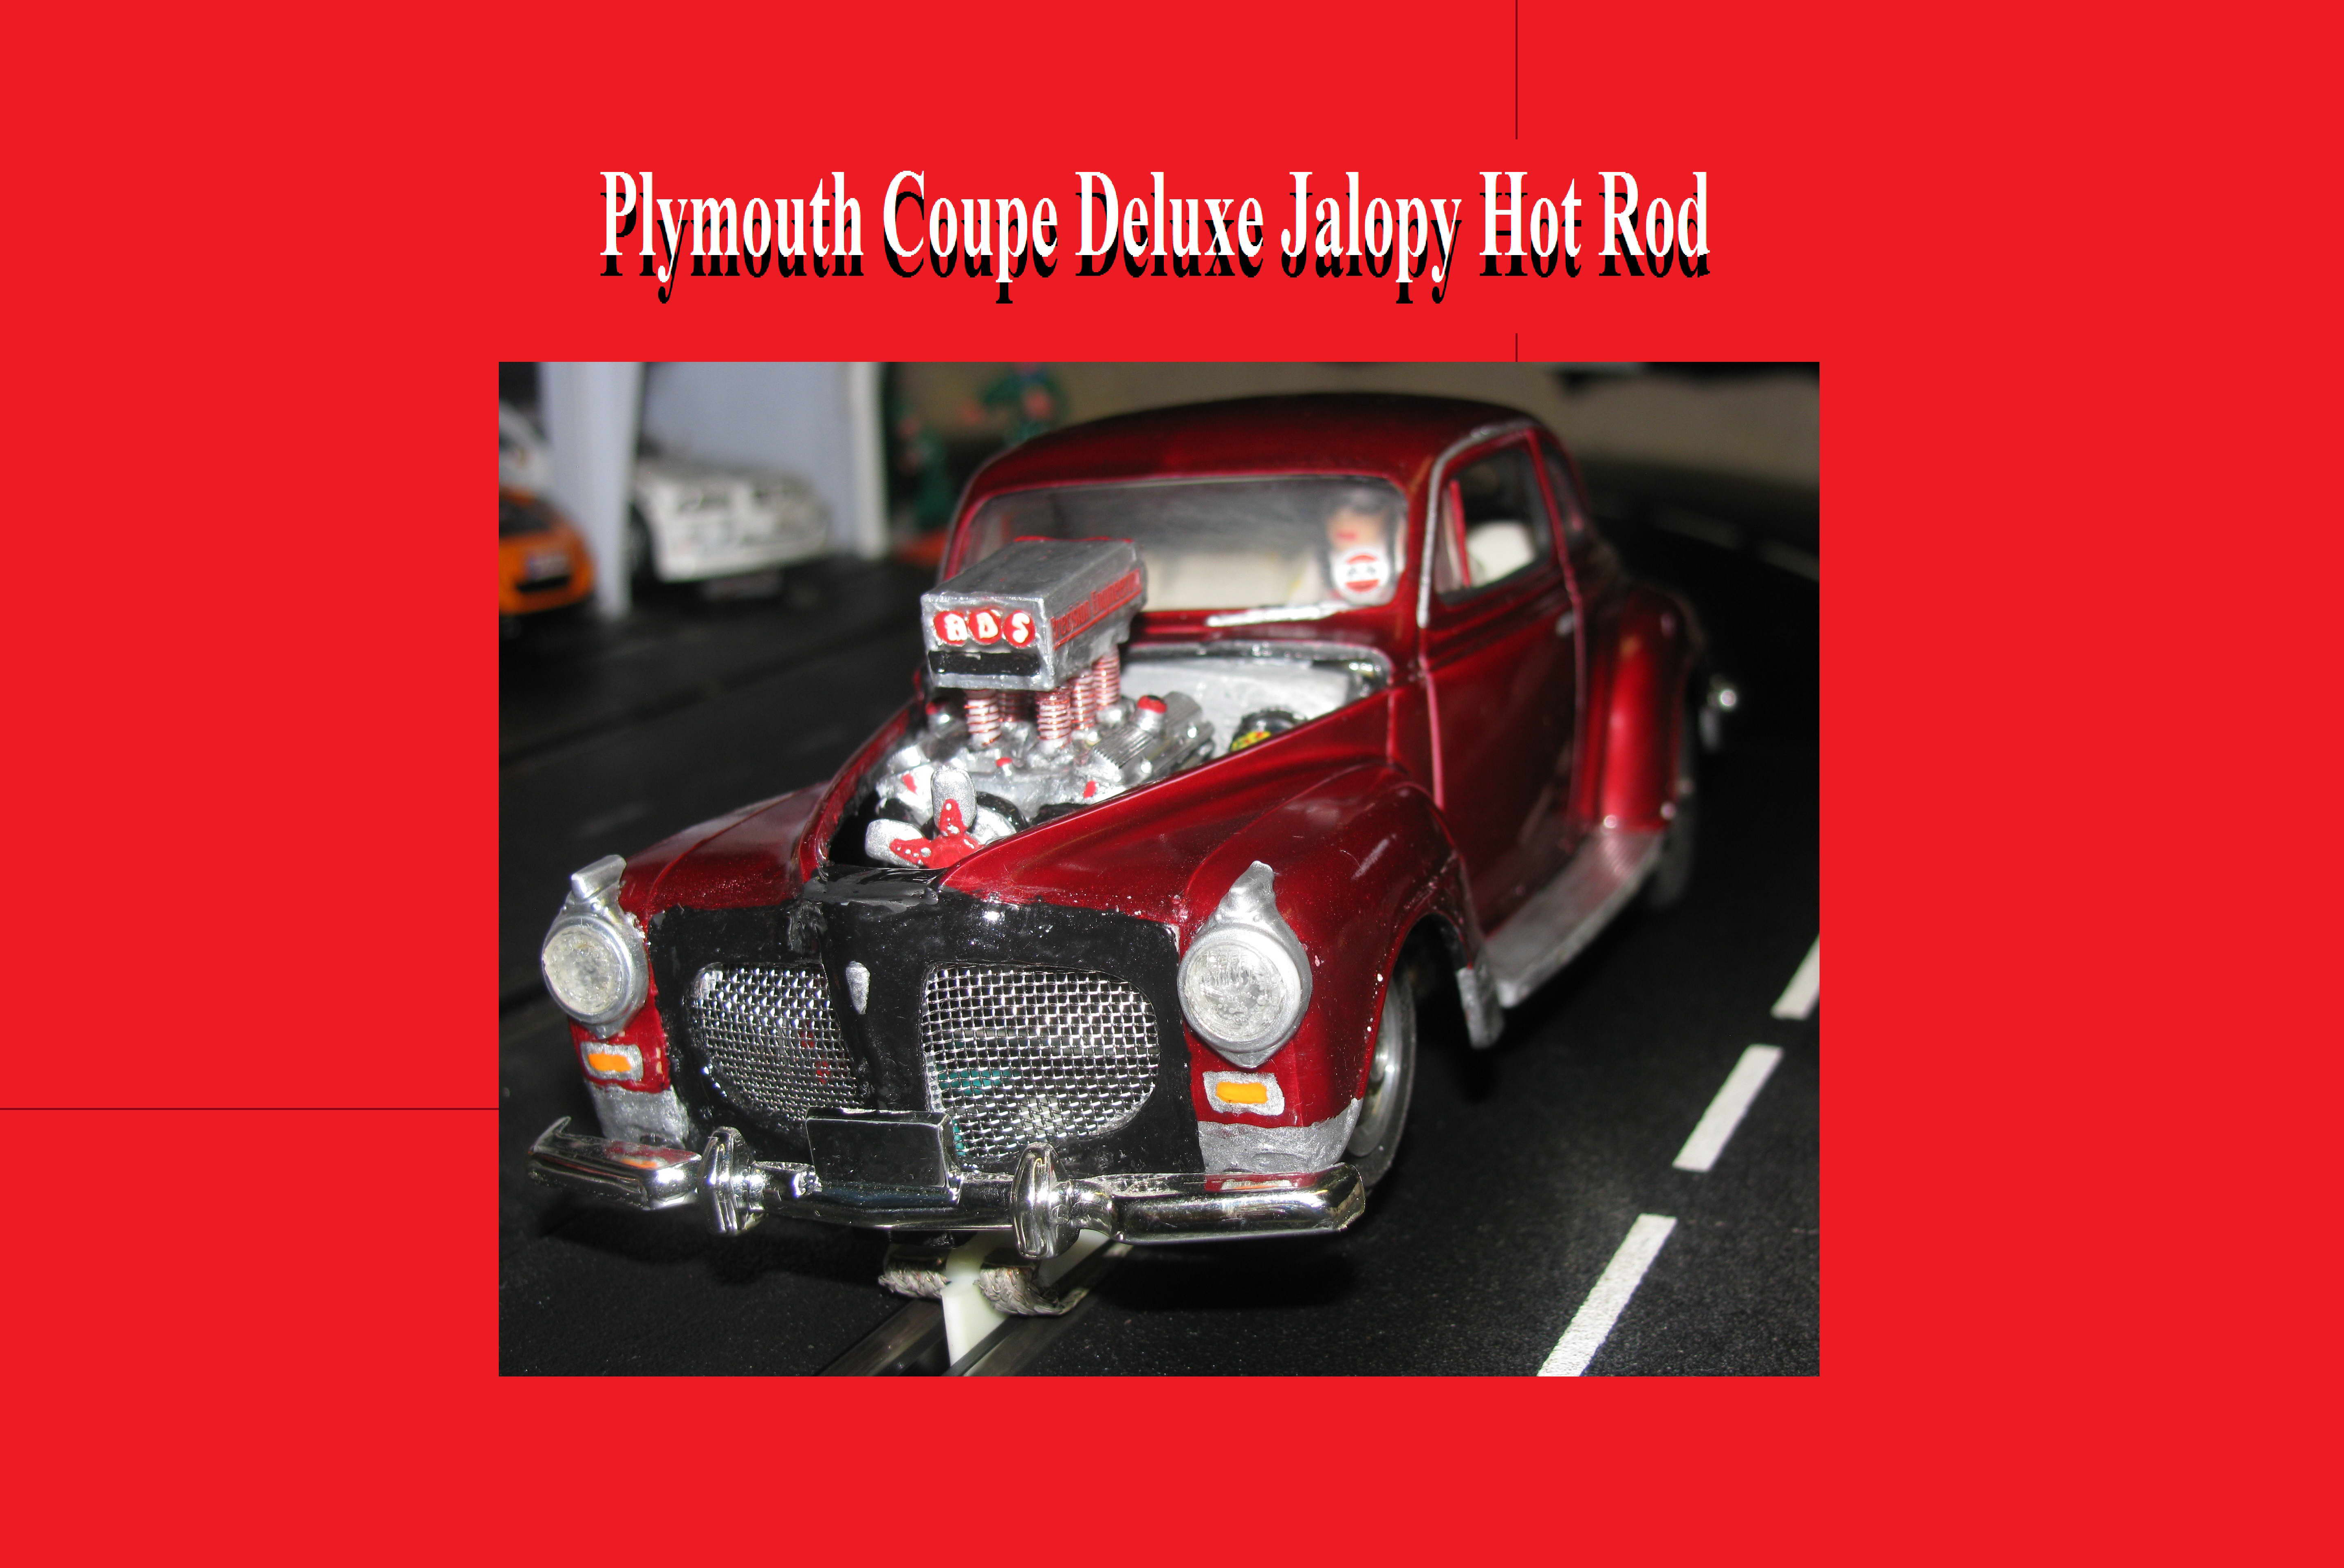 * SUMMER SALE * Vintage 1940 Plymouth Coupe Deluxe Jalopy Hot Rod Slot Car 1:24 Scale